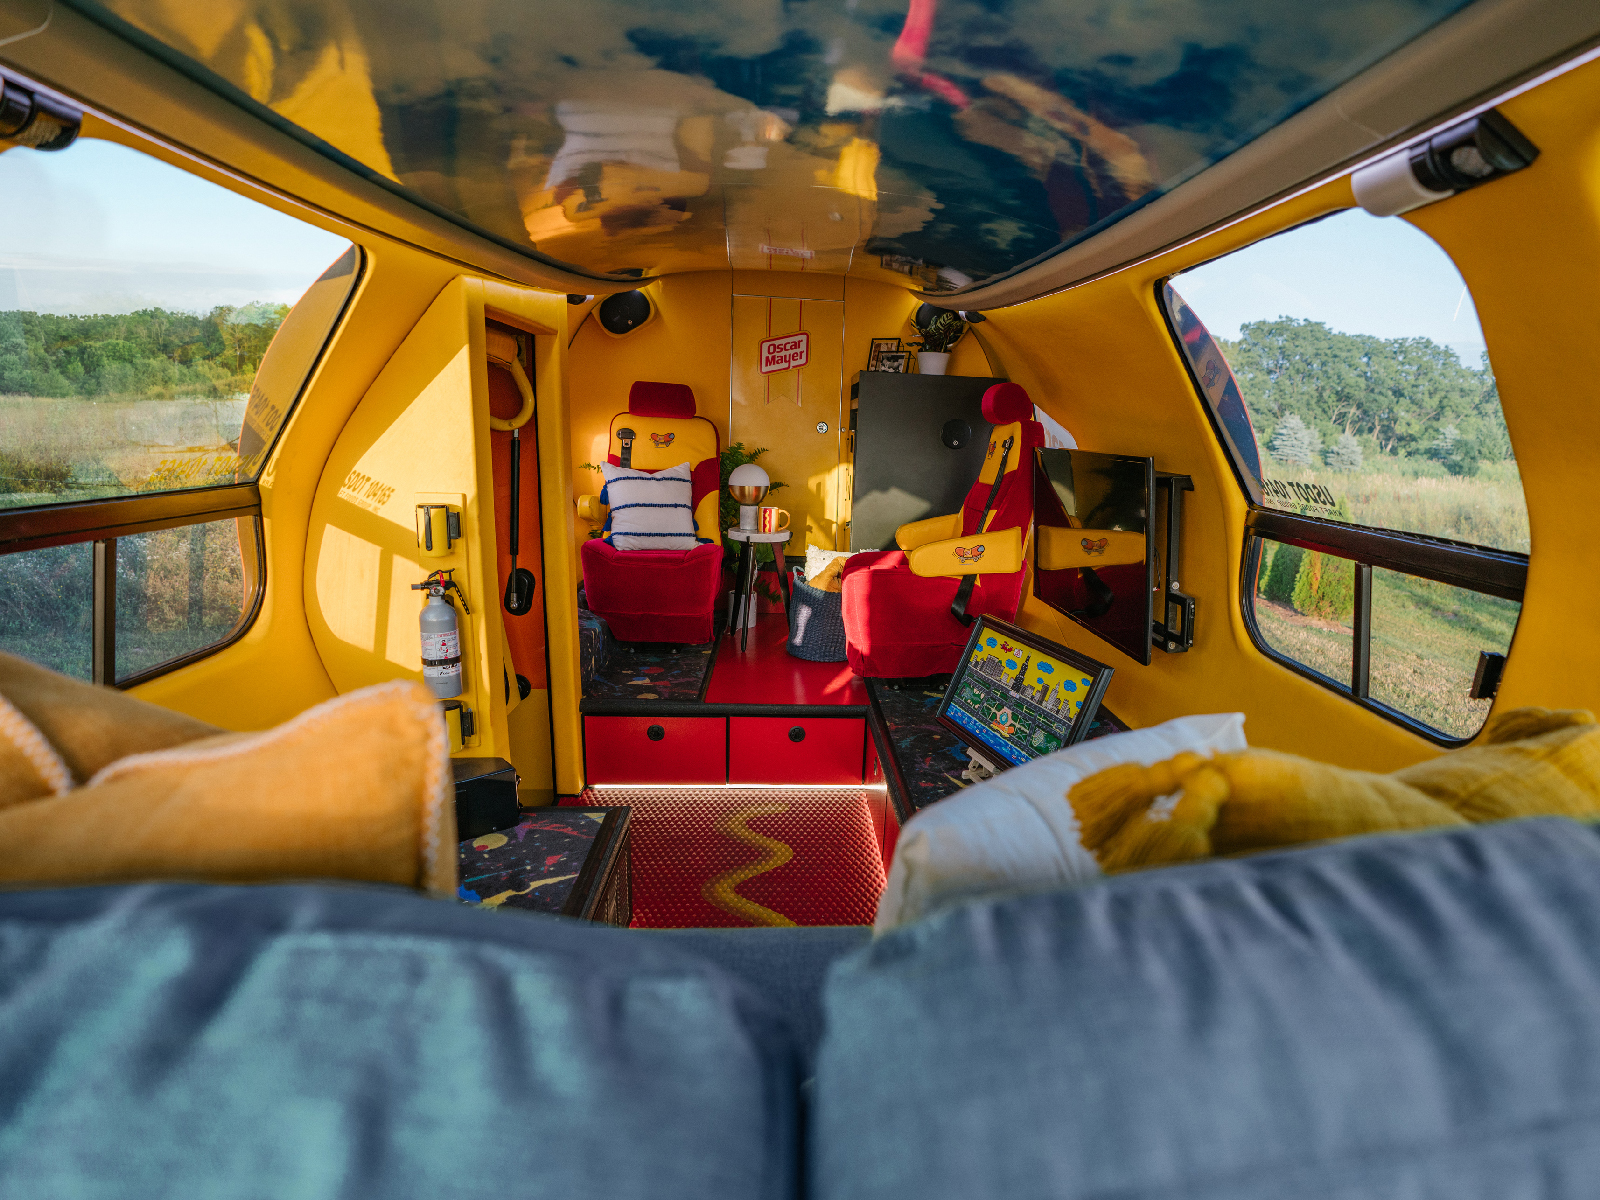 wienermobile-airbnb-6-FT-BLOG0719.jpg